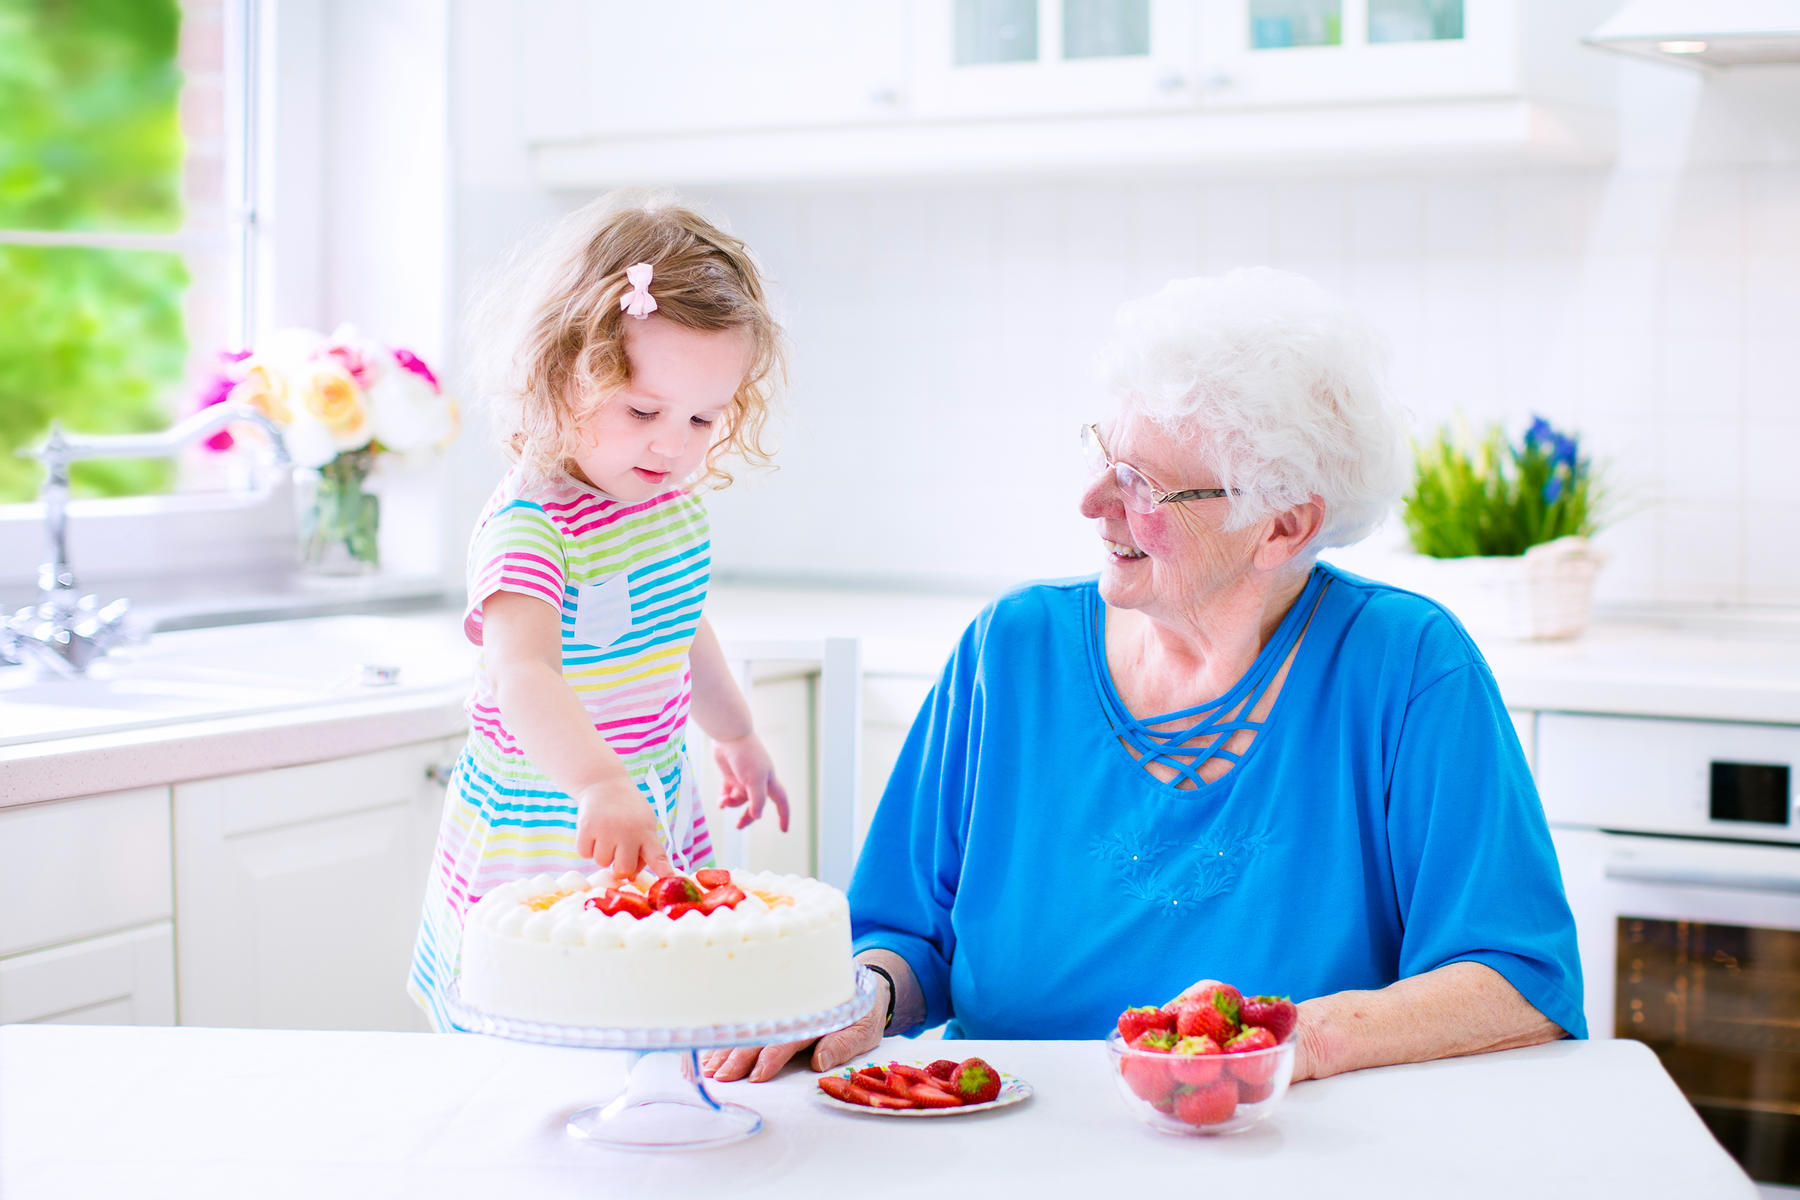 Grandma and Granddaughter Making Strawberry Shortcake